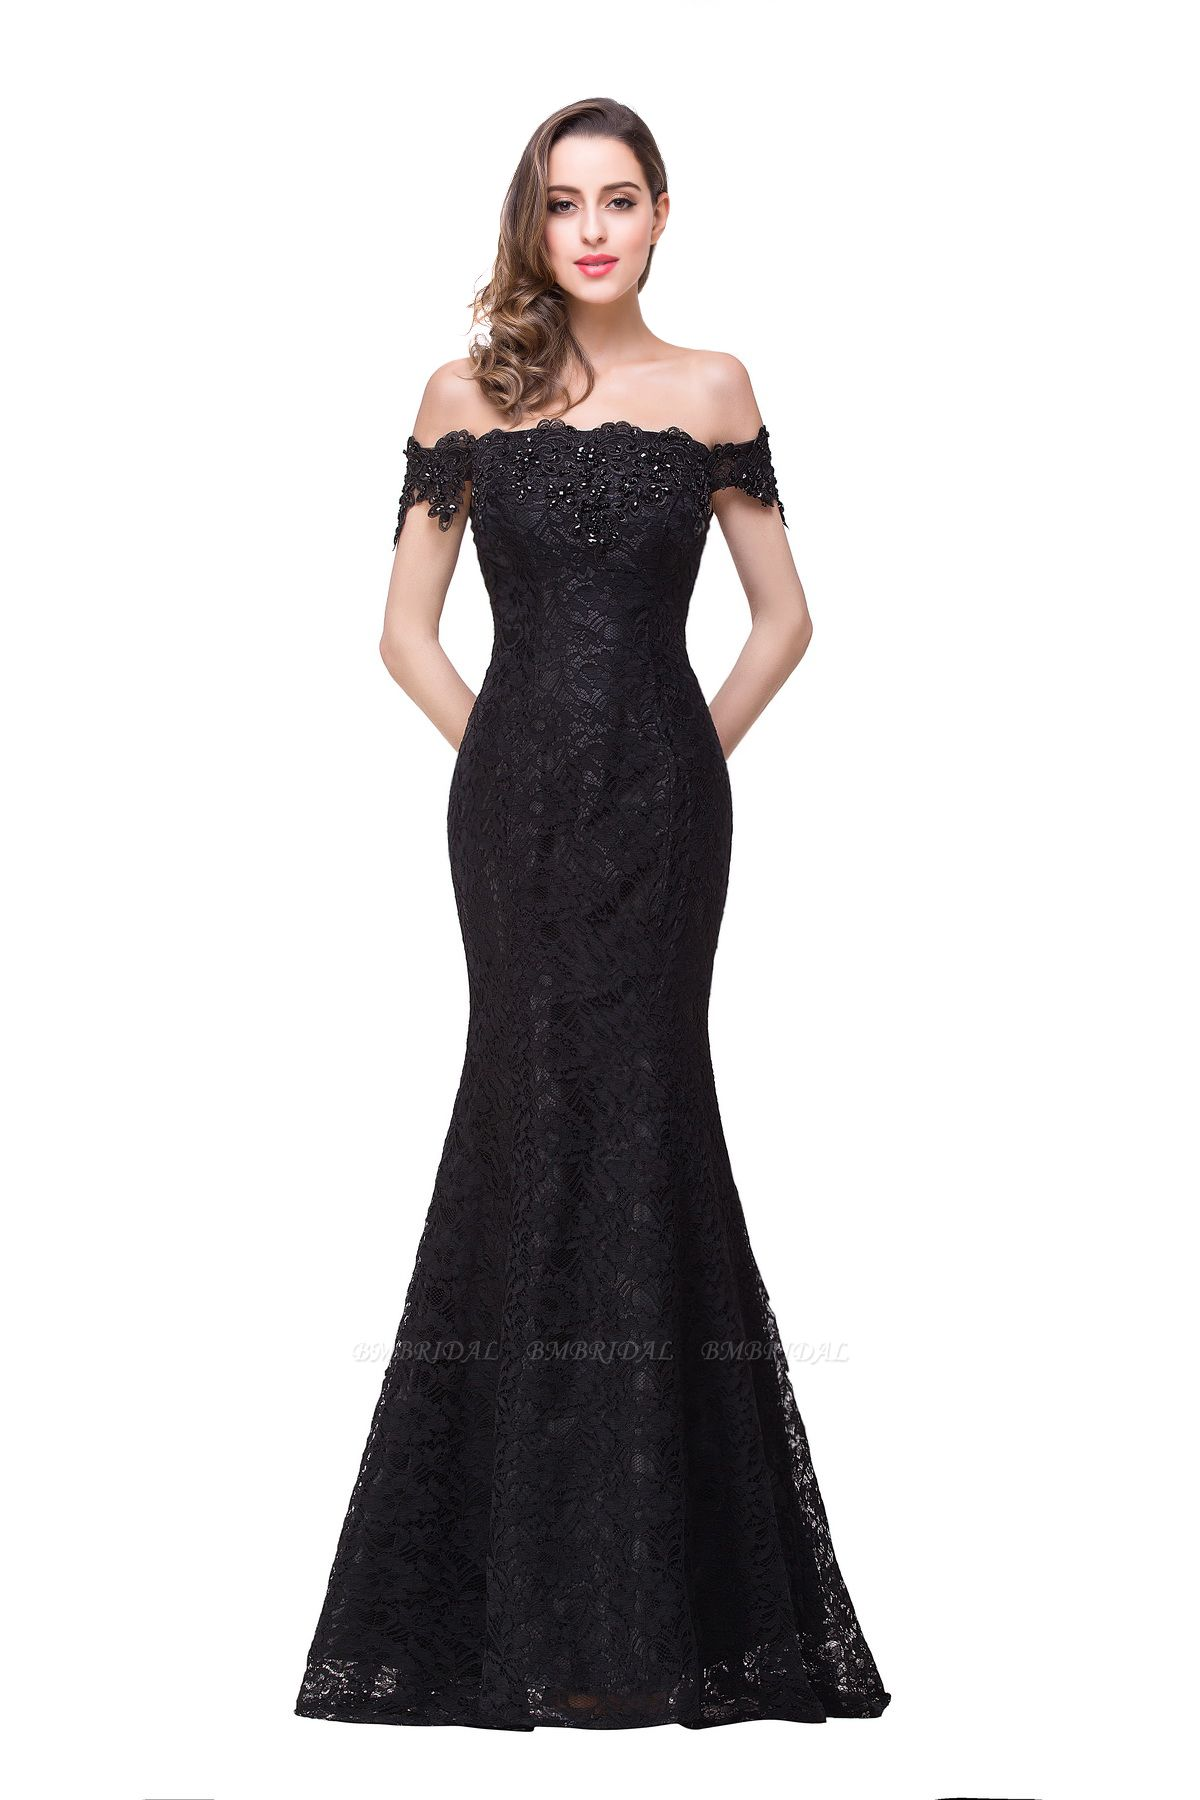 Off-the-Shoulder Lace Mermaid Prom Dress Long Evening Party Gowns Online